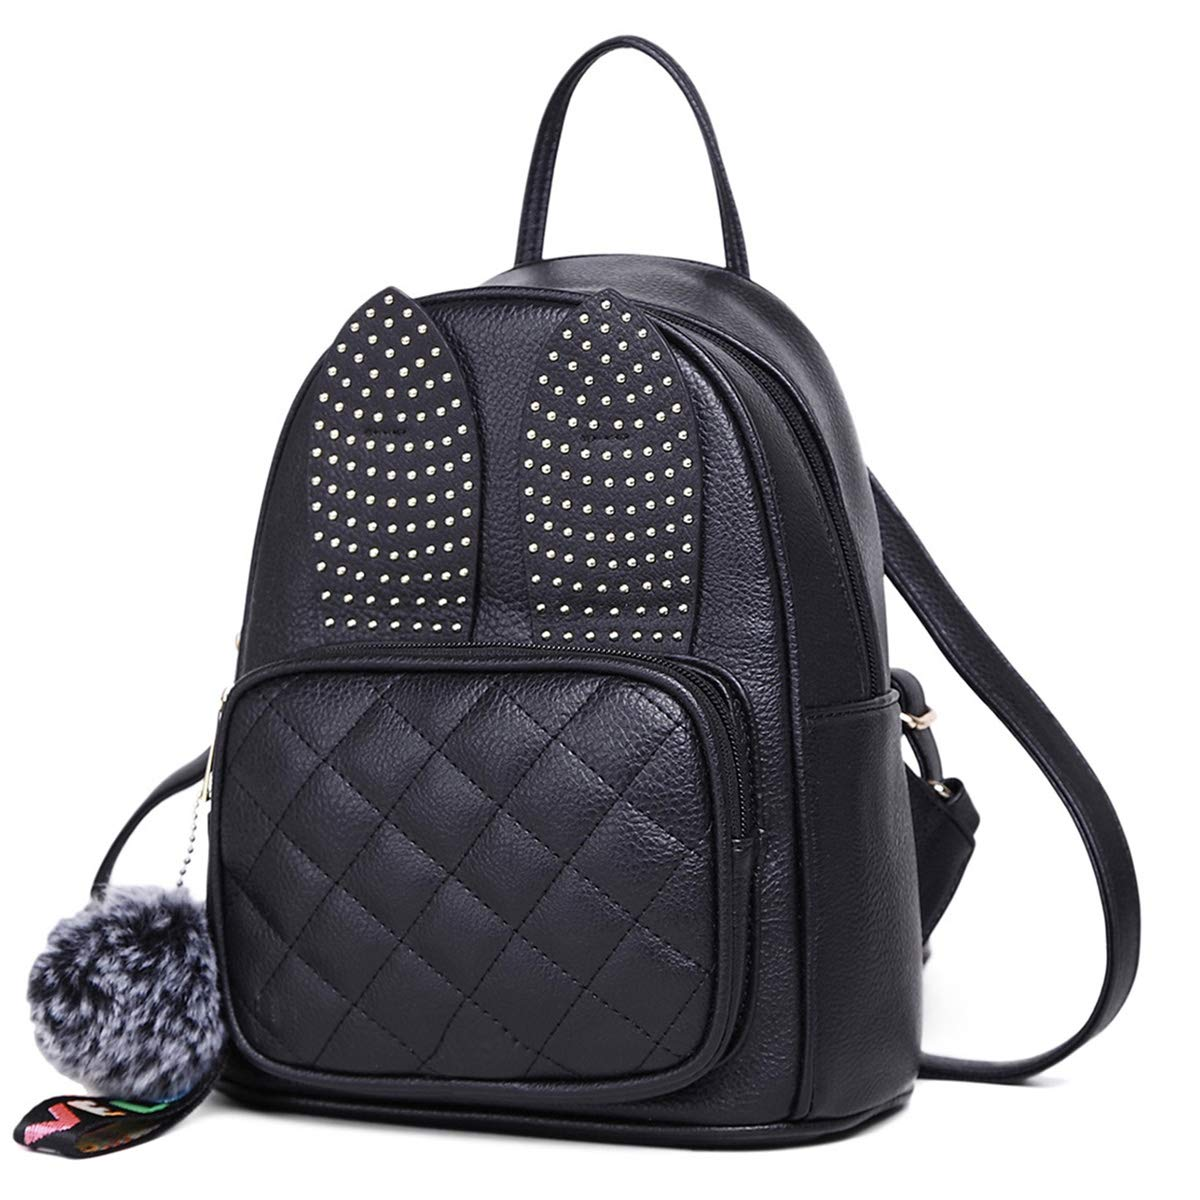 bf49b1044602 Details about Girls Rabbit Ear Cute Leather Small Women Fashion Bag Black  Shoulder Backpack